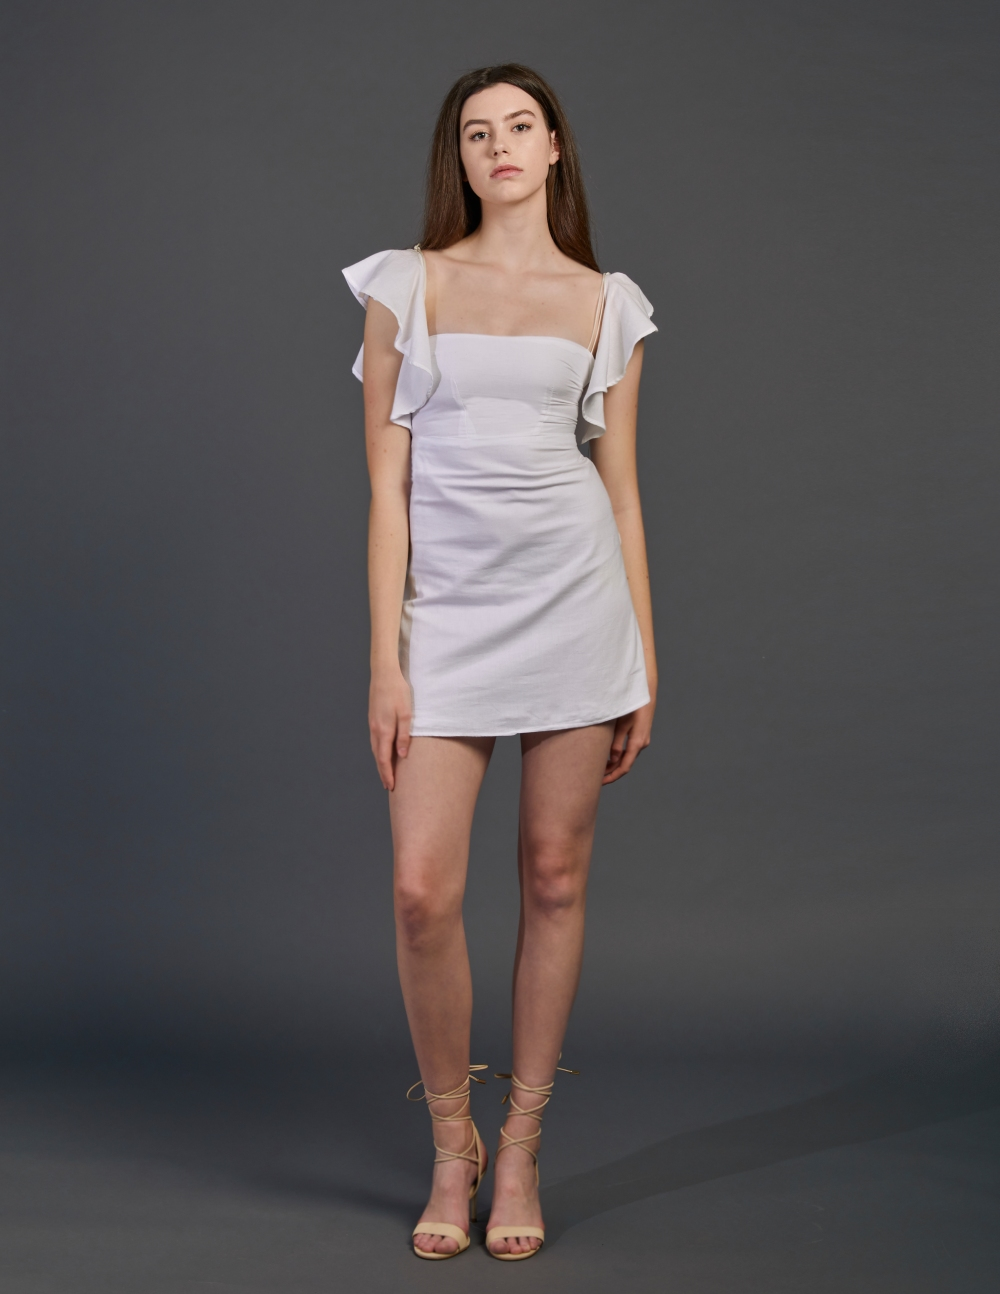 Alyssa-Nicole-Spring-2018-Camilla-Dress-ANSP18101